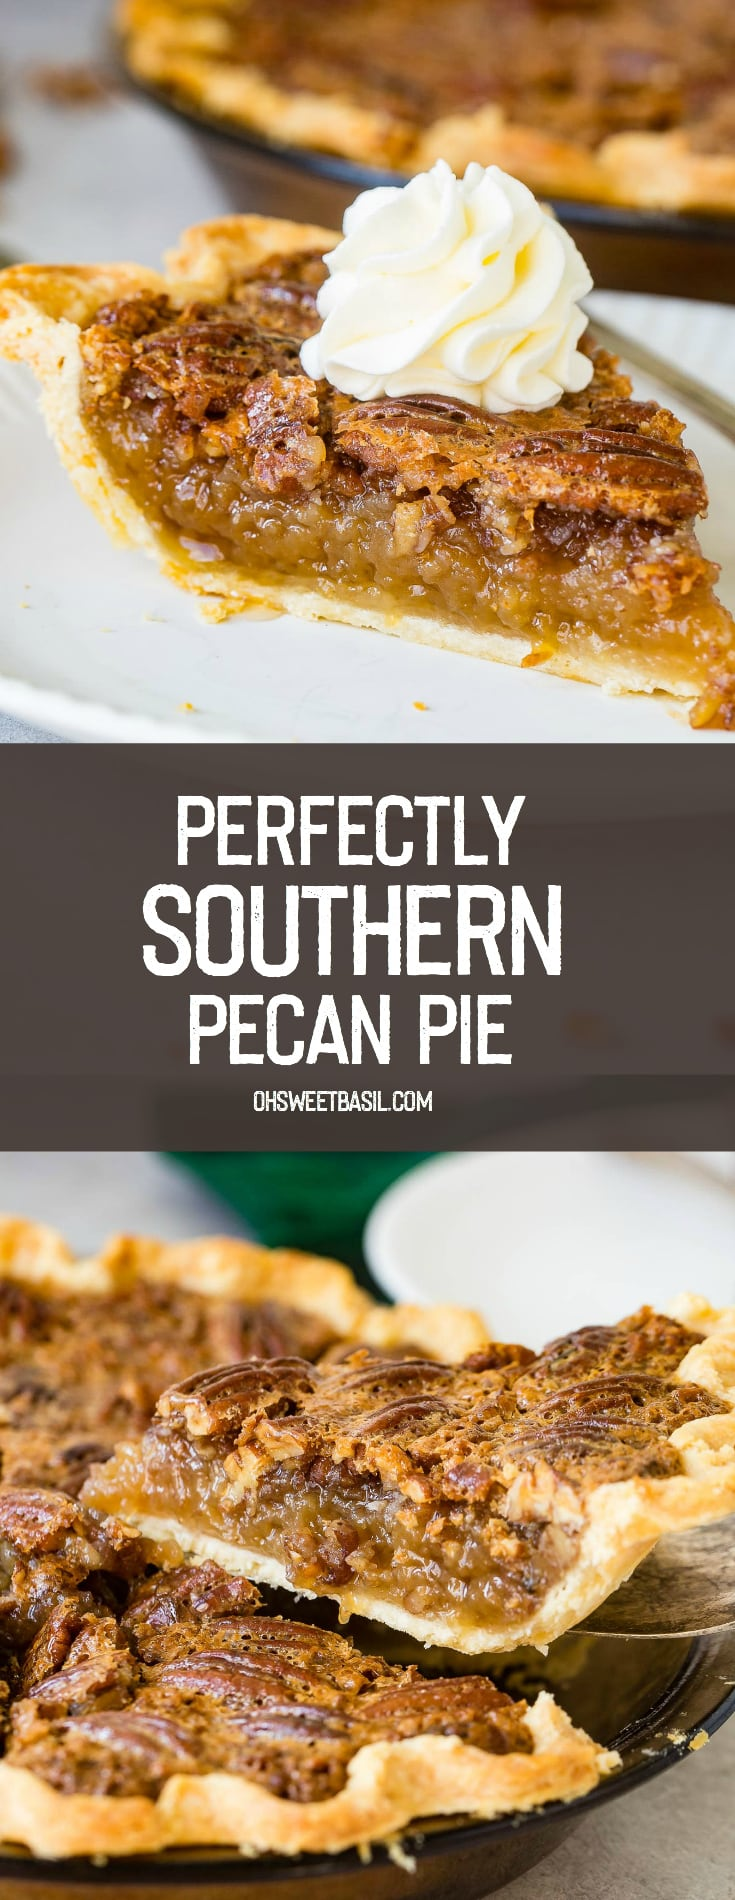 A photo of a slice of pecan pie sitting on a white place with a dollop of whipped cream on top.